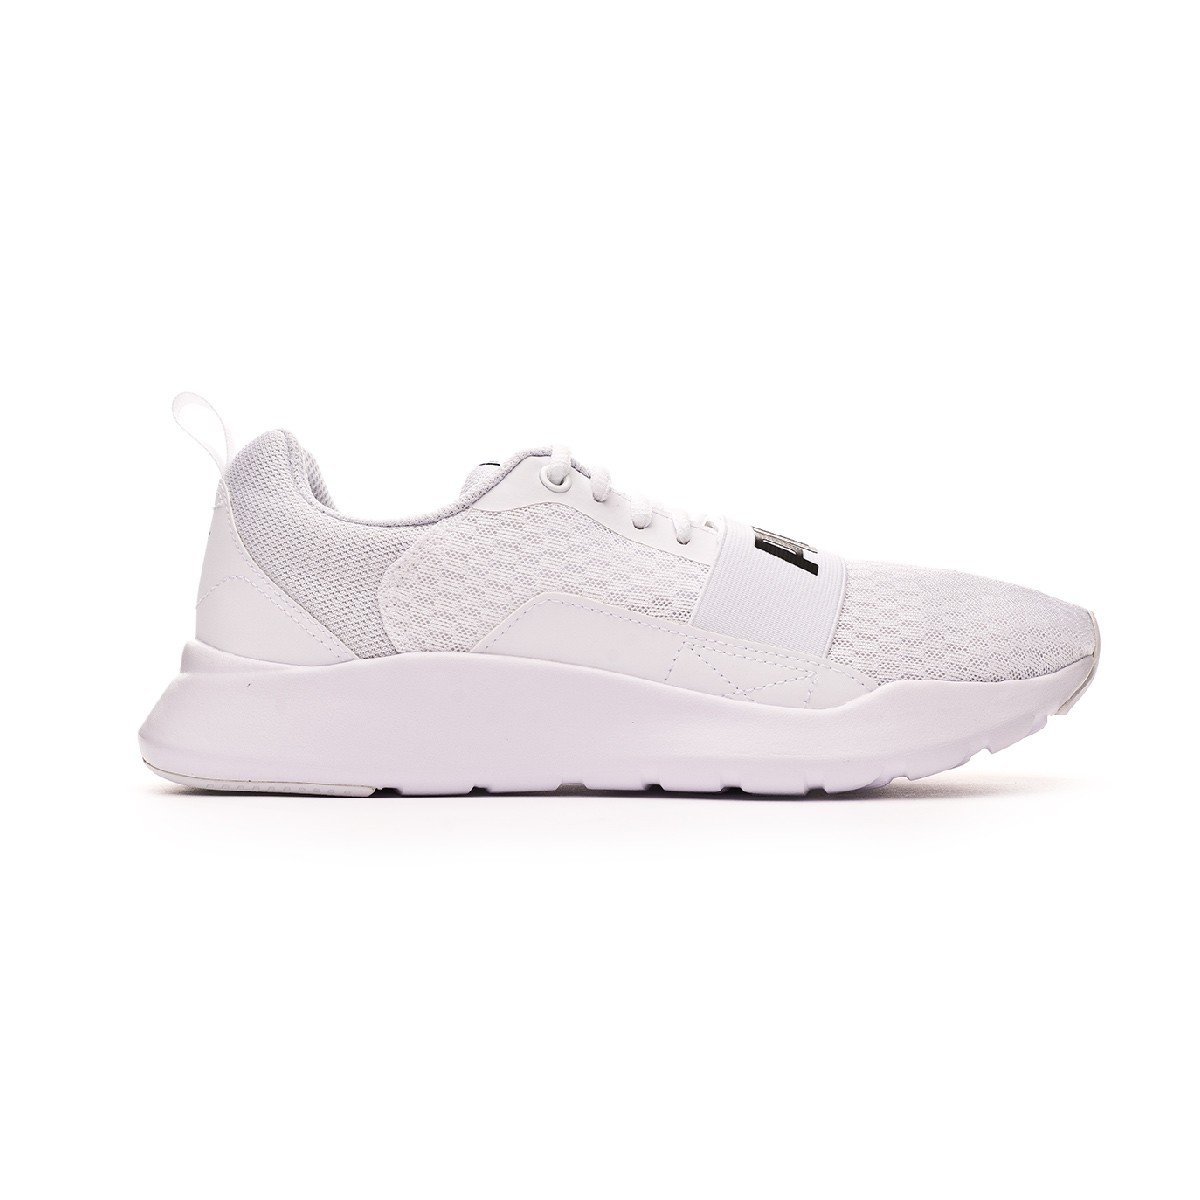 5a6f2d074de0 Trainers Puma Wired White - Football store Fútbol Emotion